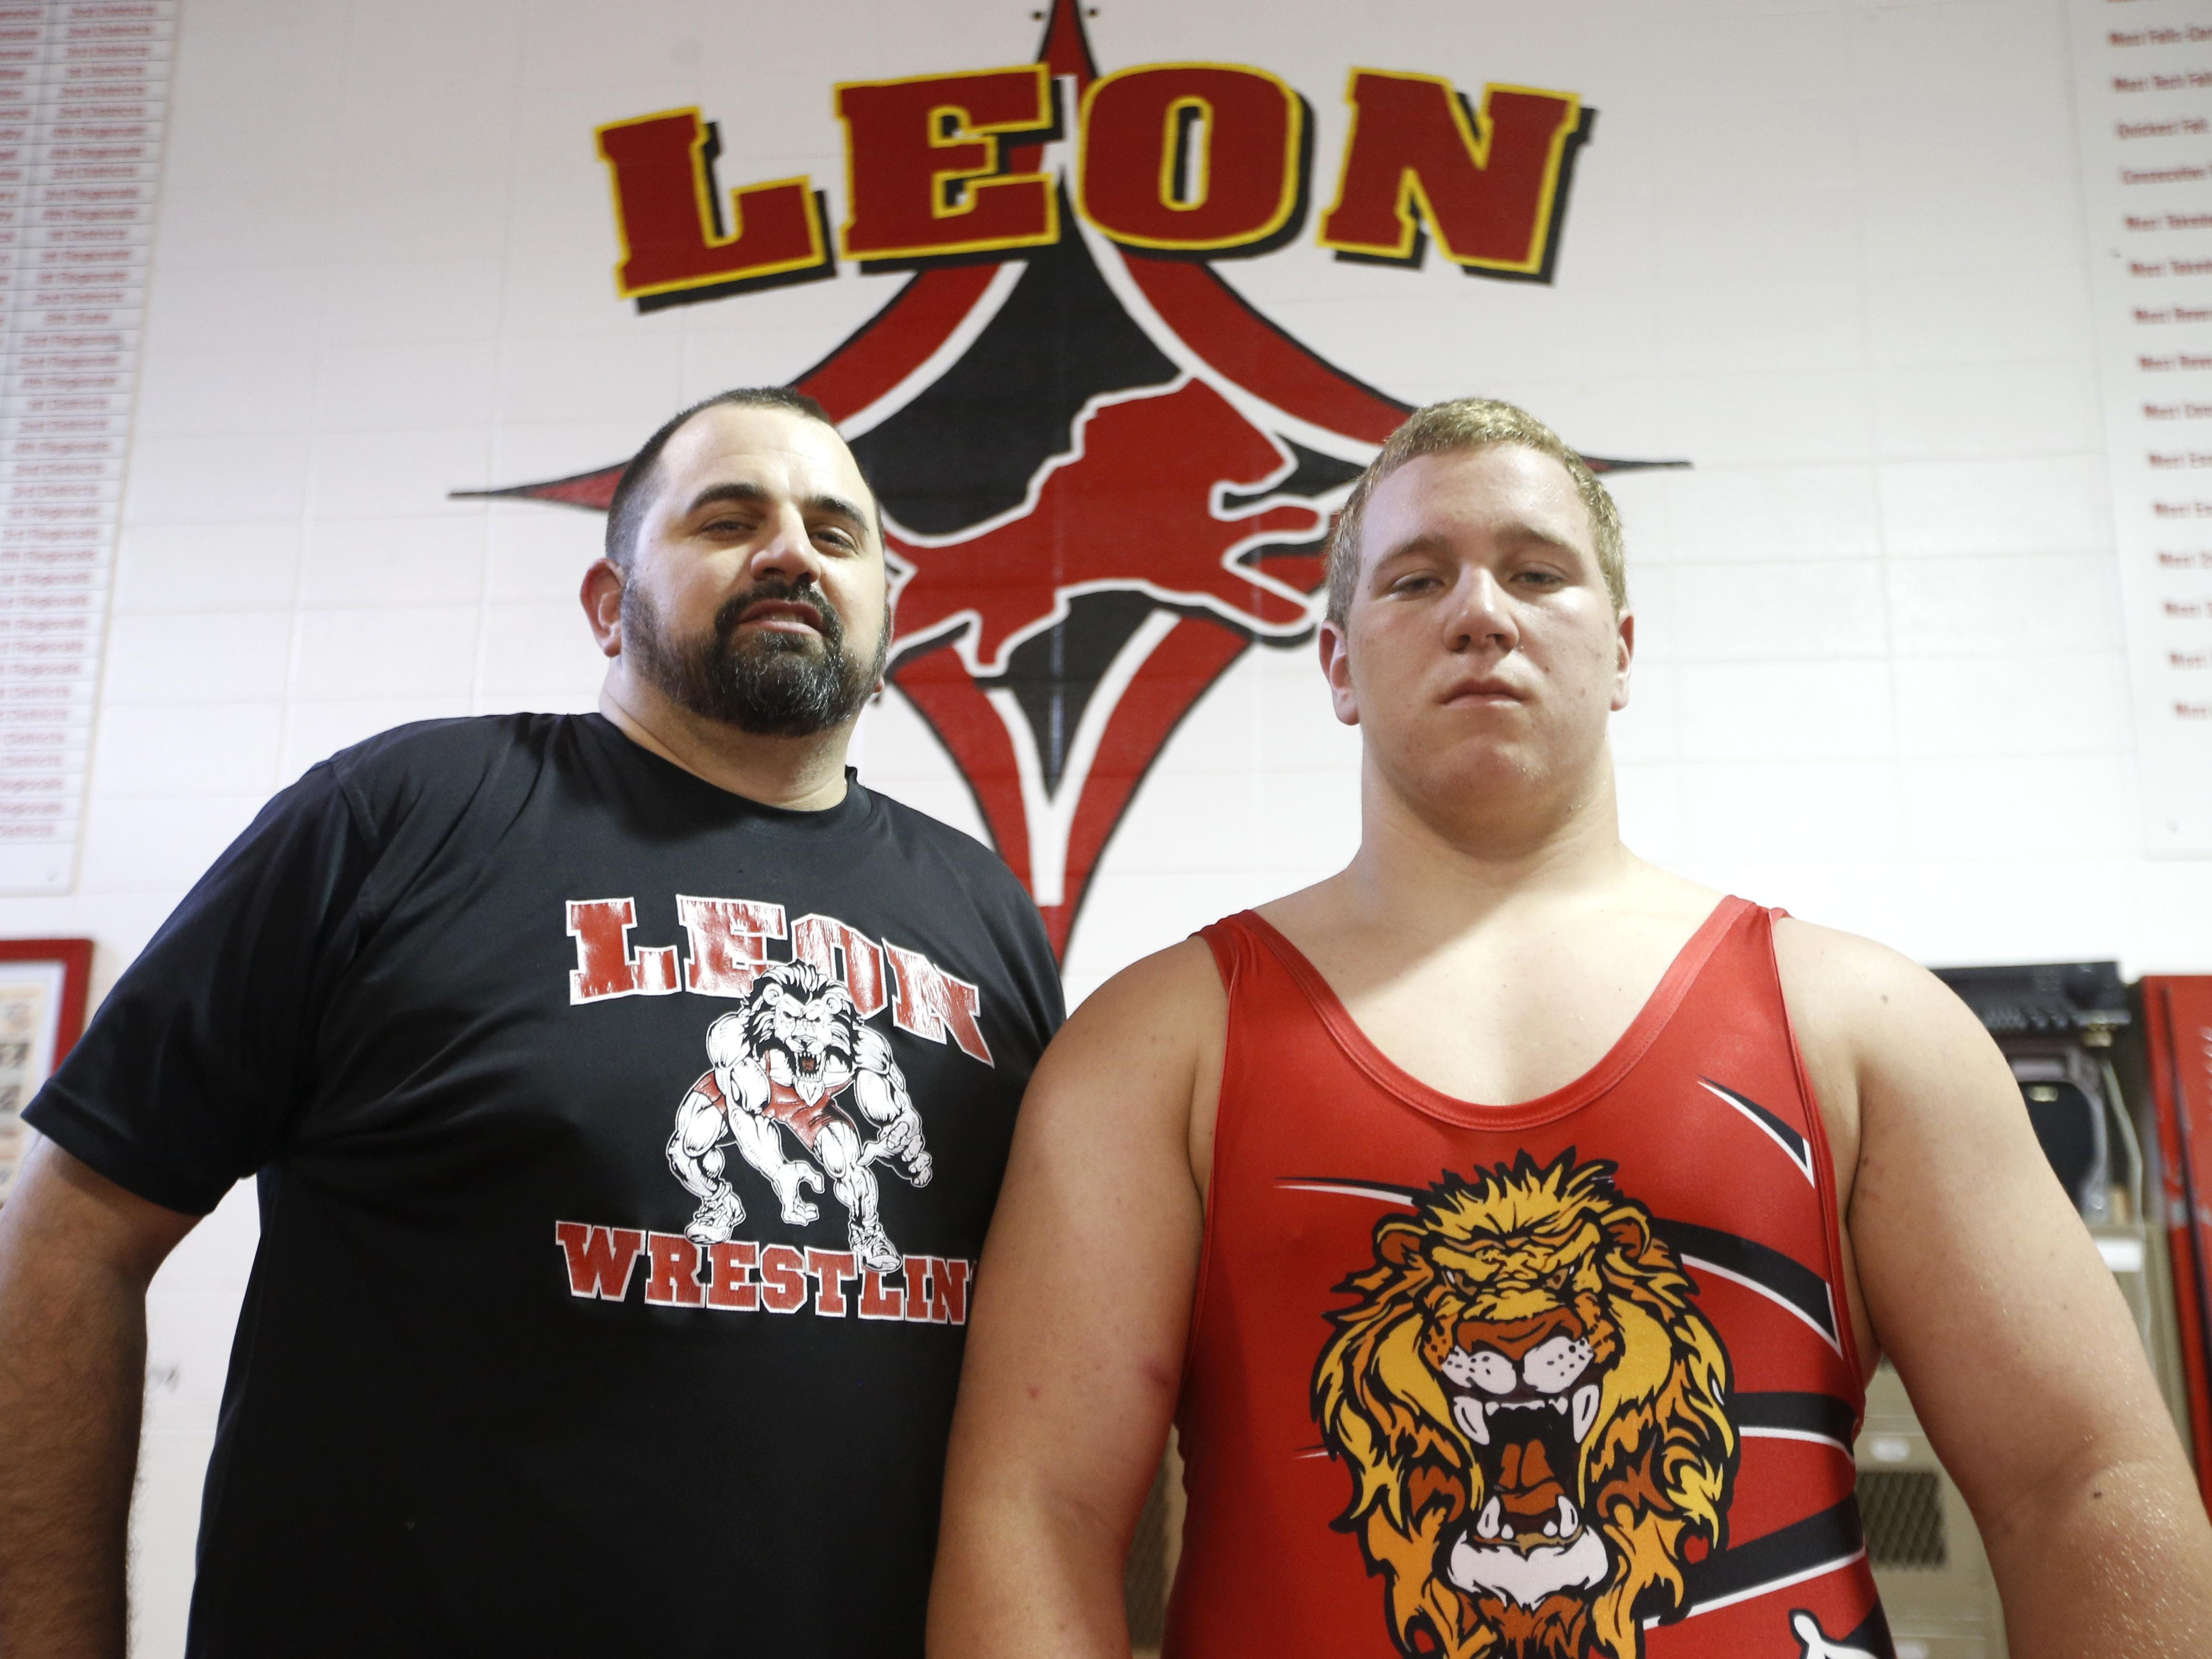 Leon's Gabe Beyer, right, was named 2015 All-Big Bend Wrestler of the Year, while Leon's Chuck Ringel was named Coach of the Year.